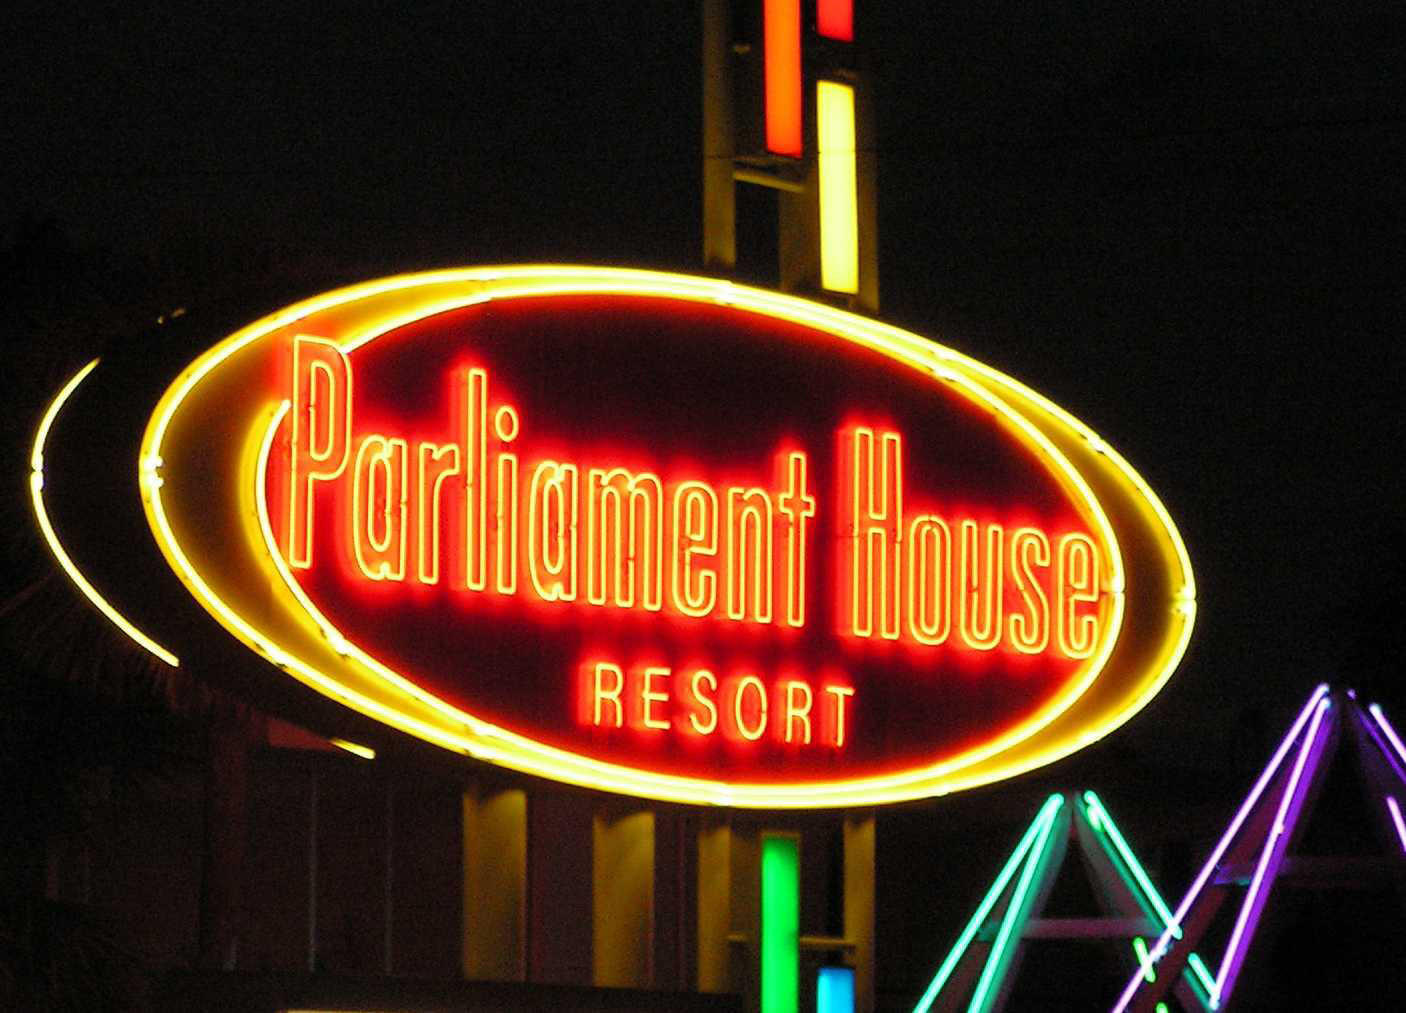 Parliament House Sale Announcement Was Premature, Owner Says   Orlando  Sentinel